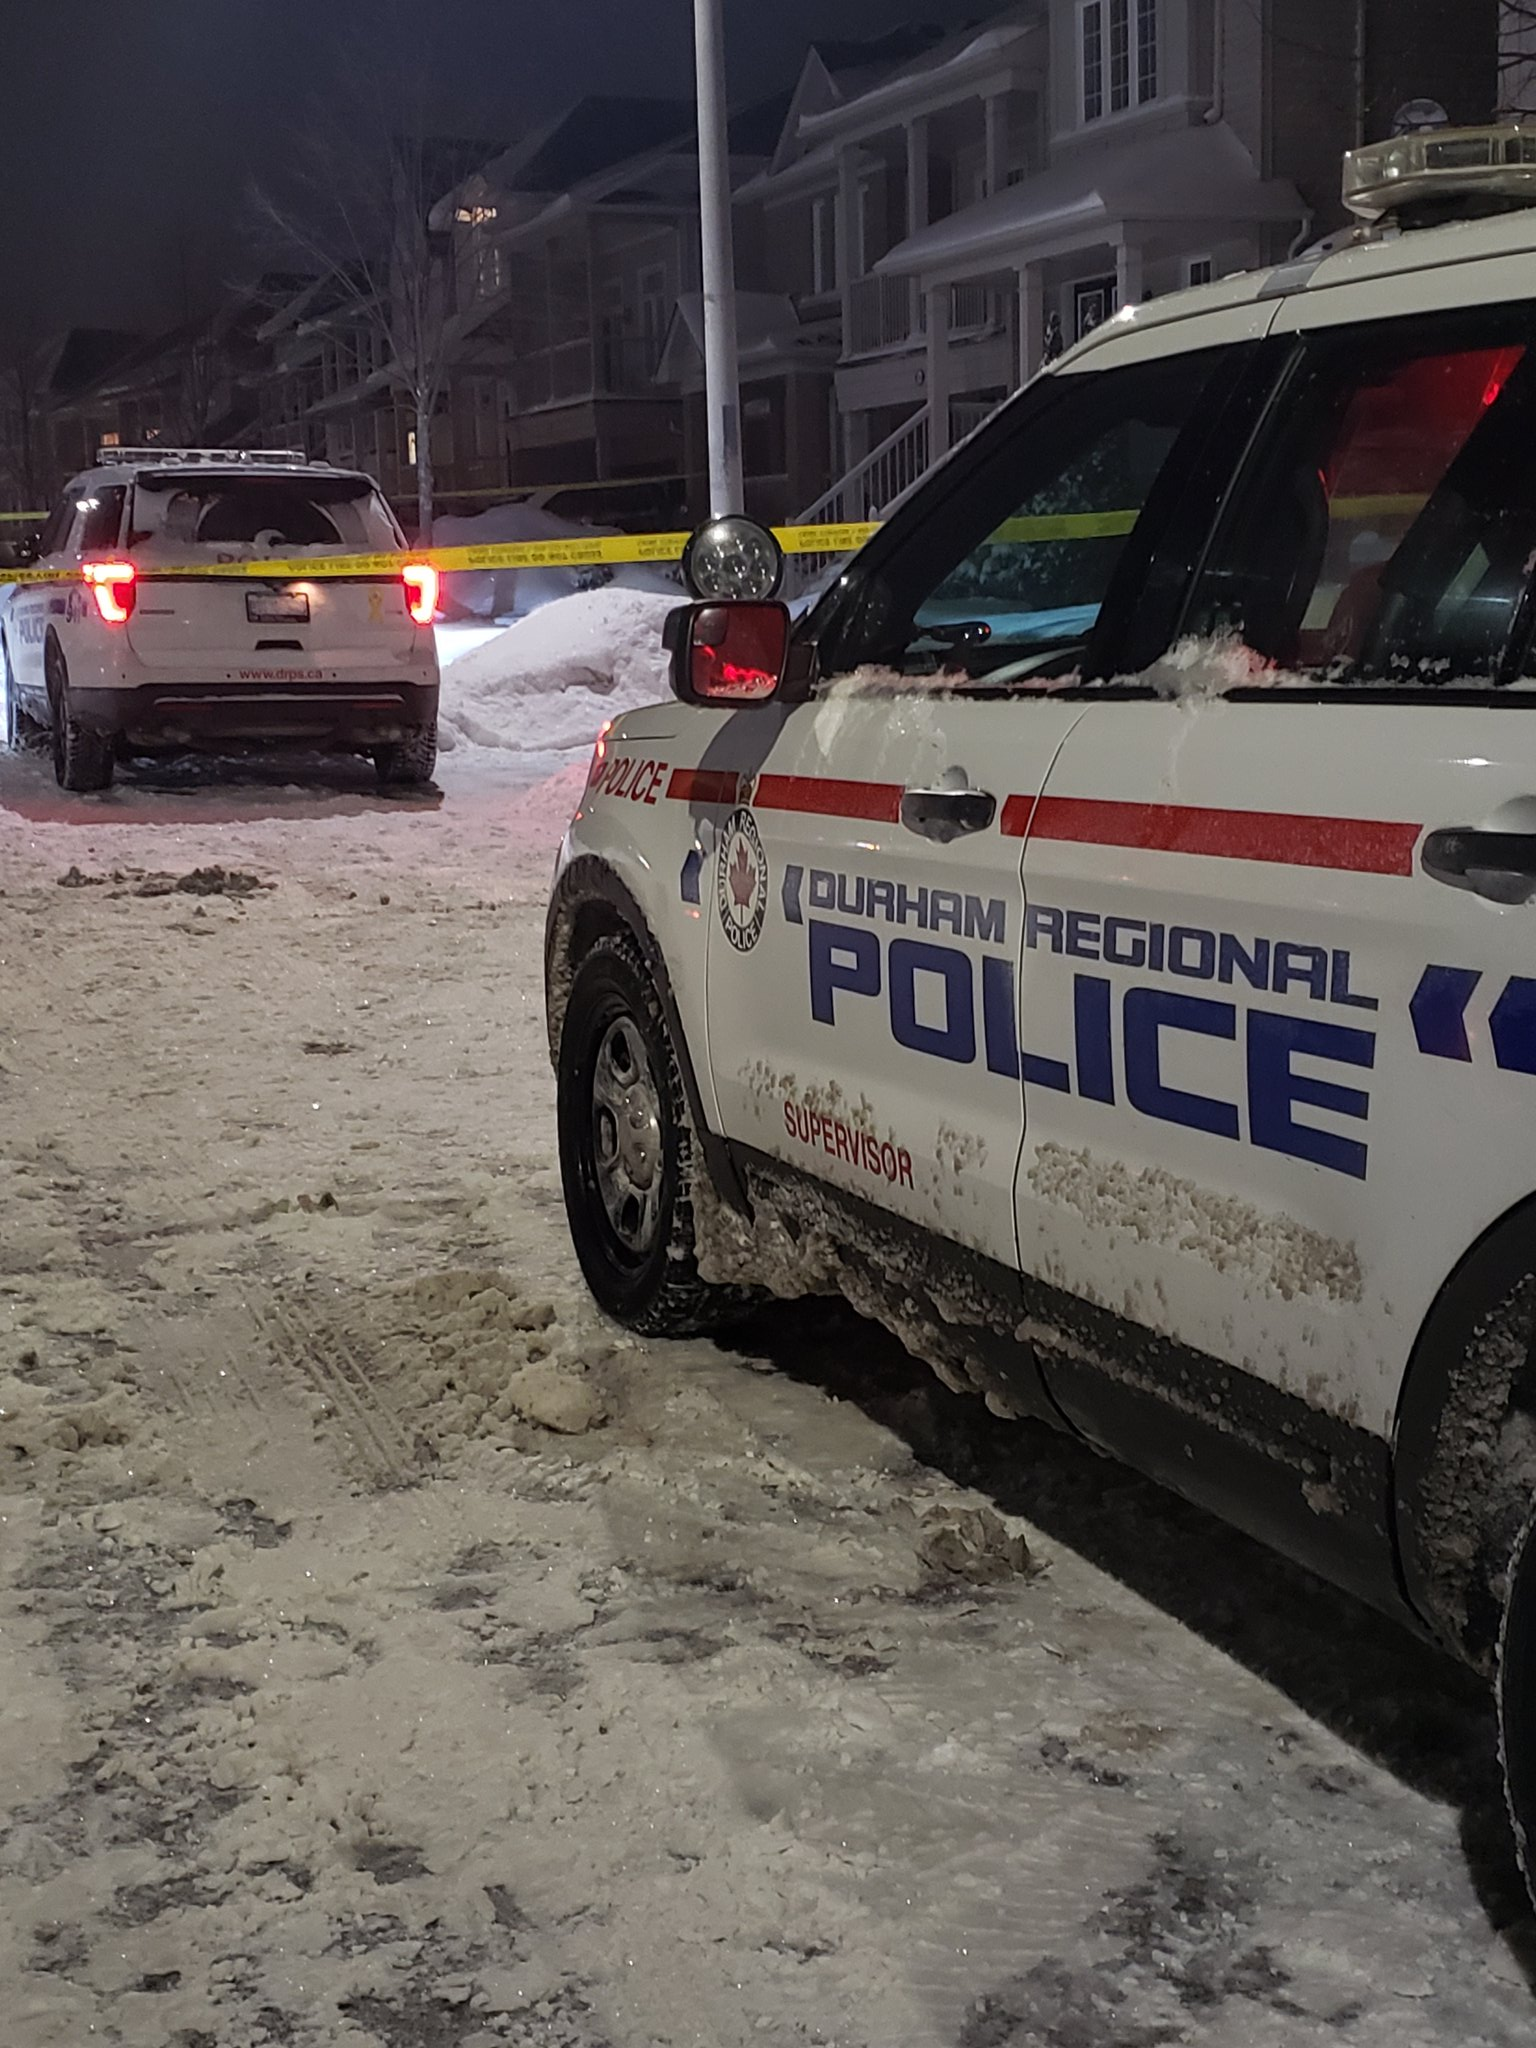 Homicide investigators looking into suspicious death in Oshawa